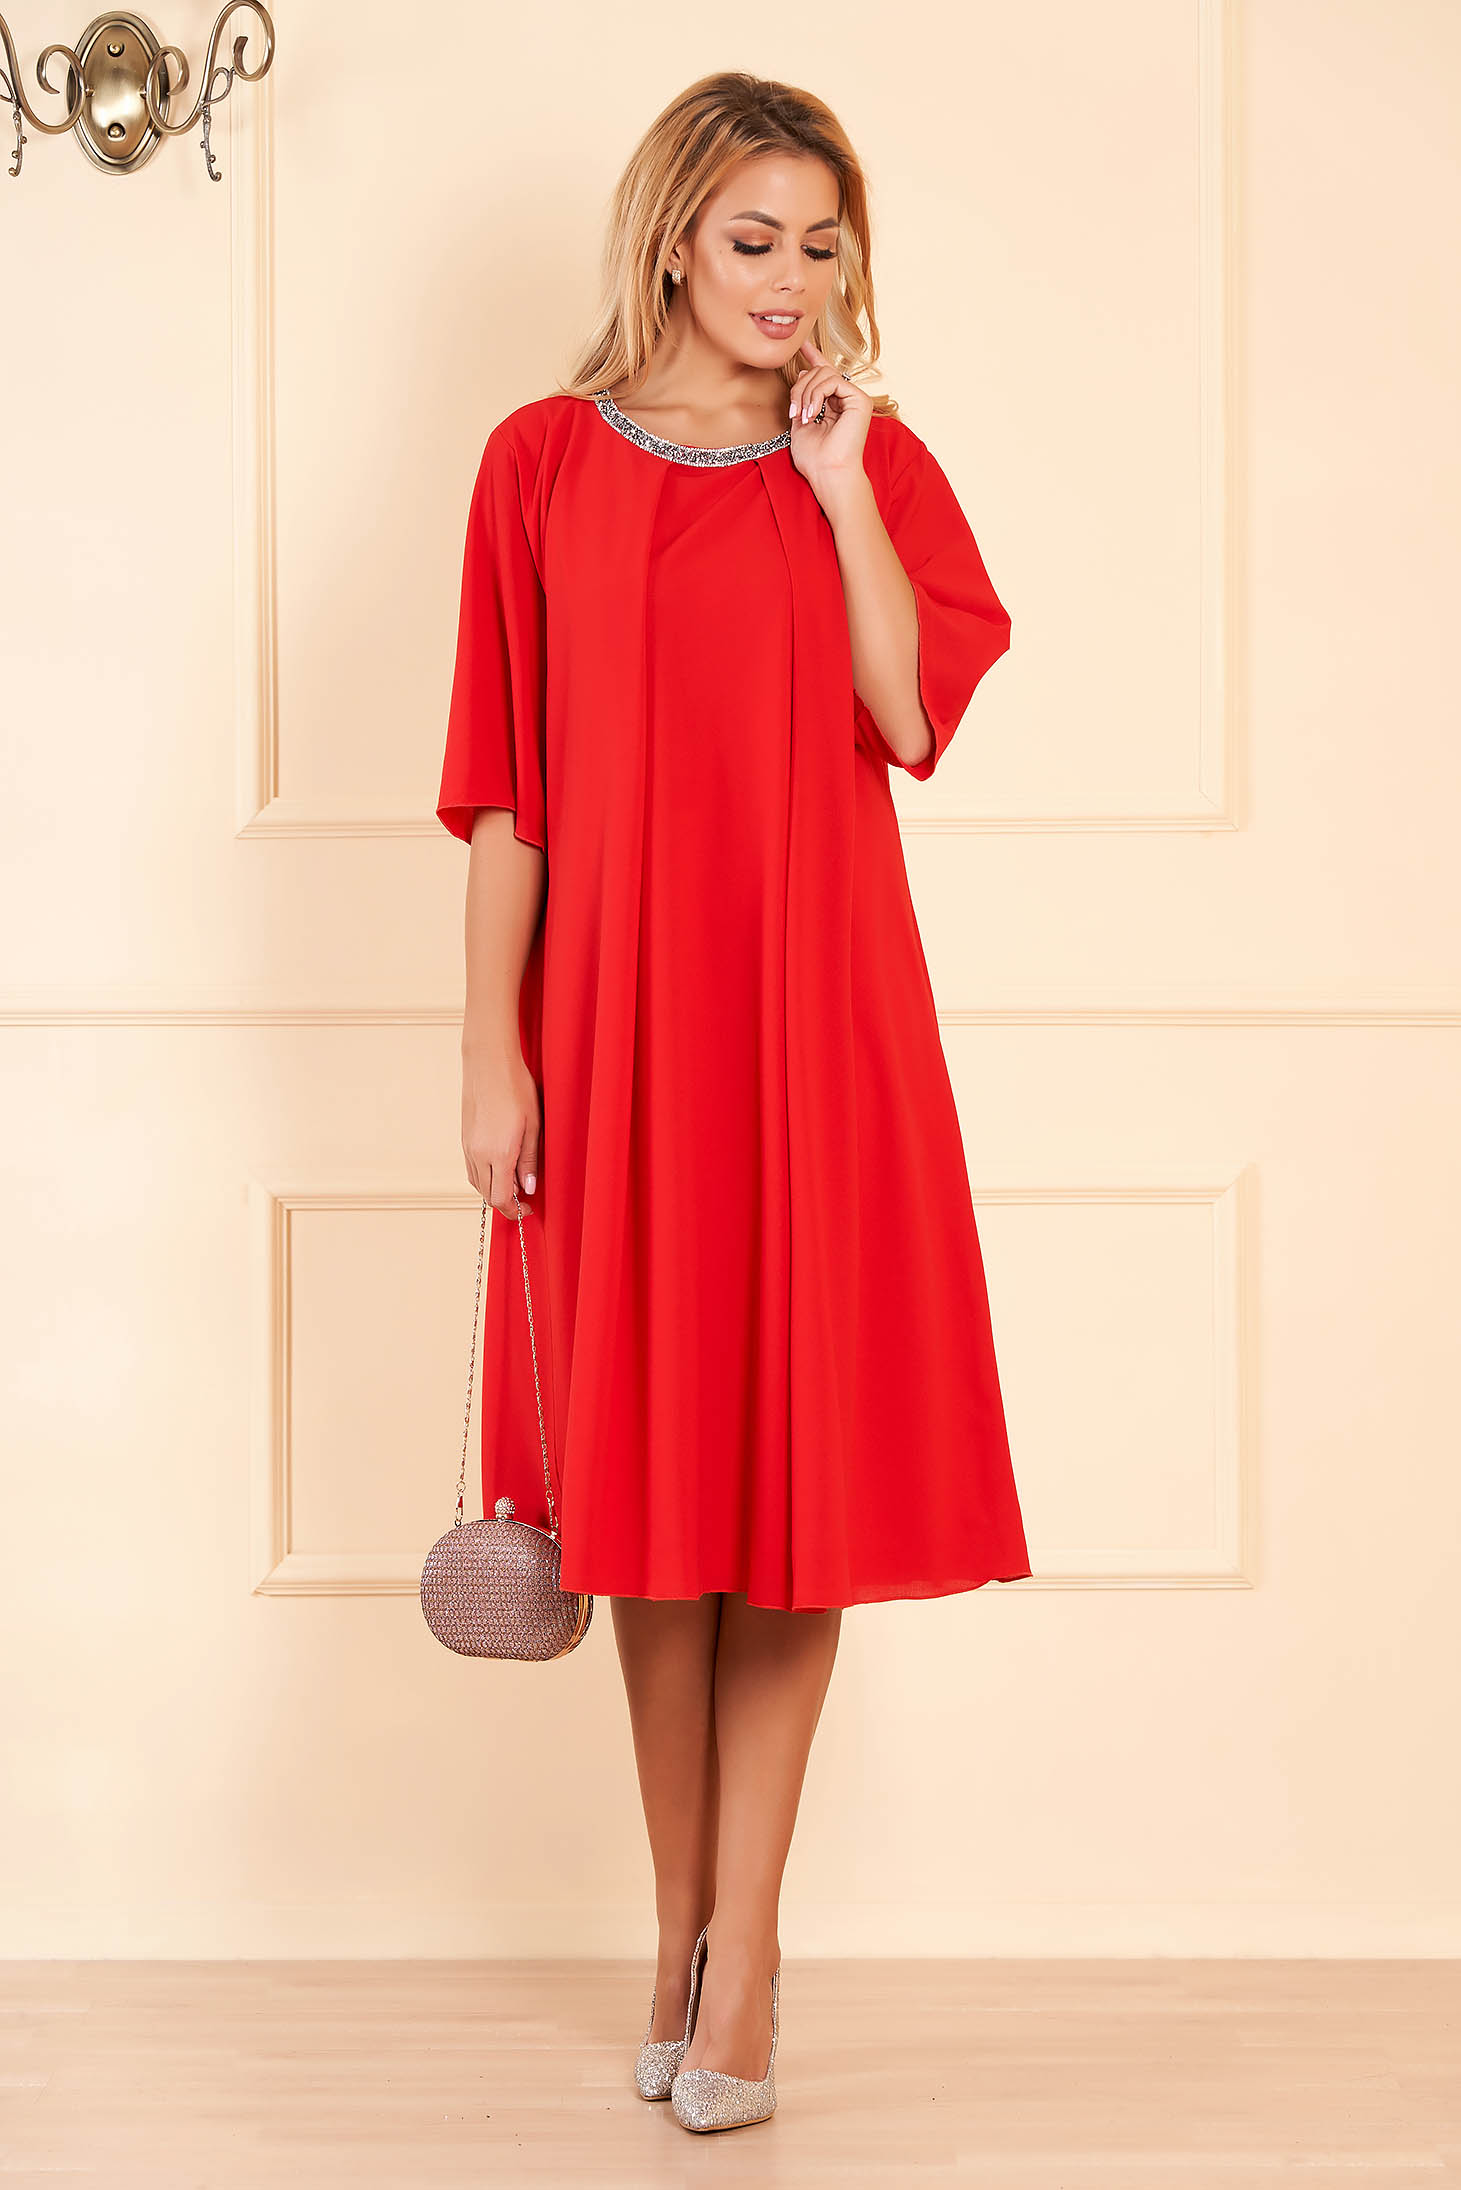 Red occasional flared dress from veil fabric with bright details